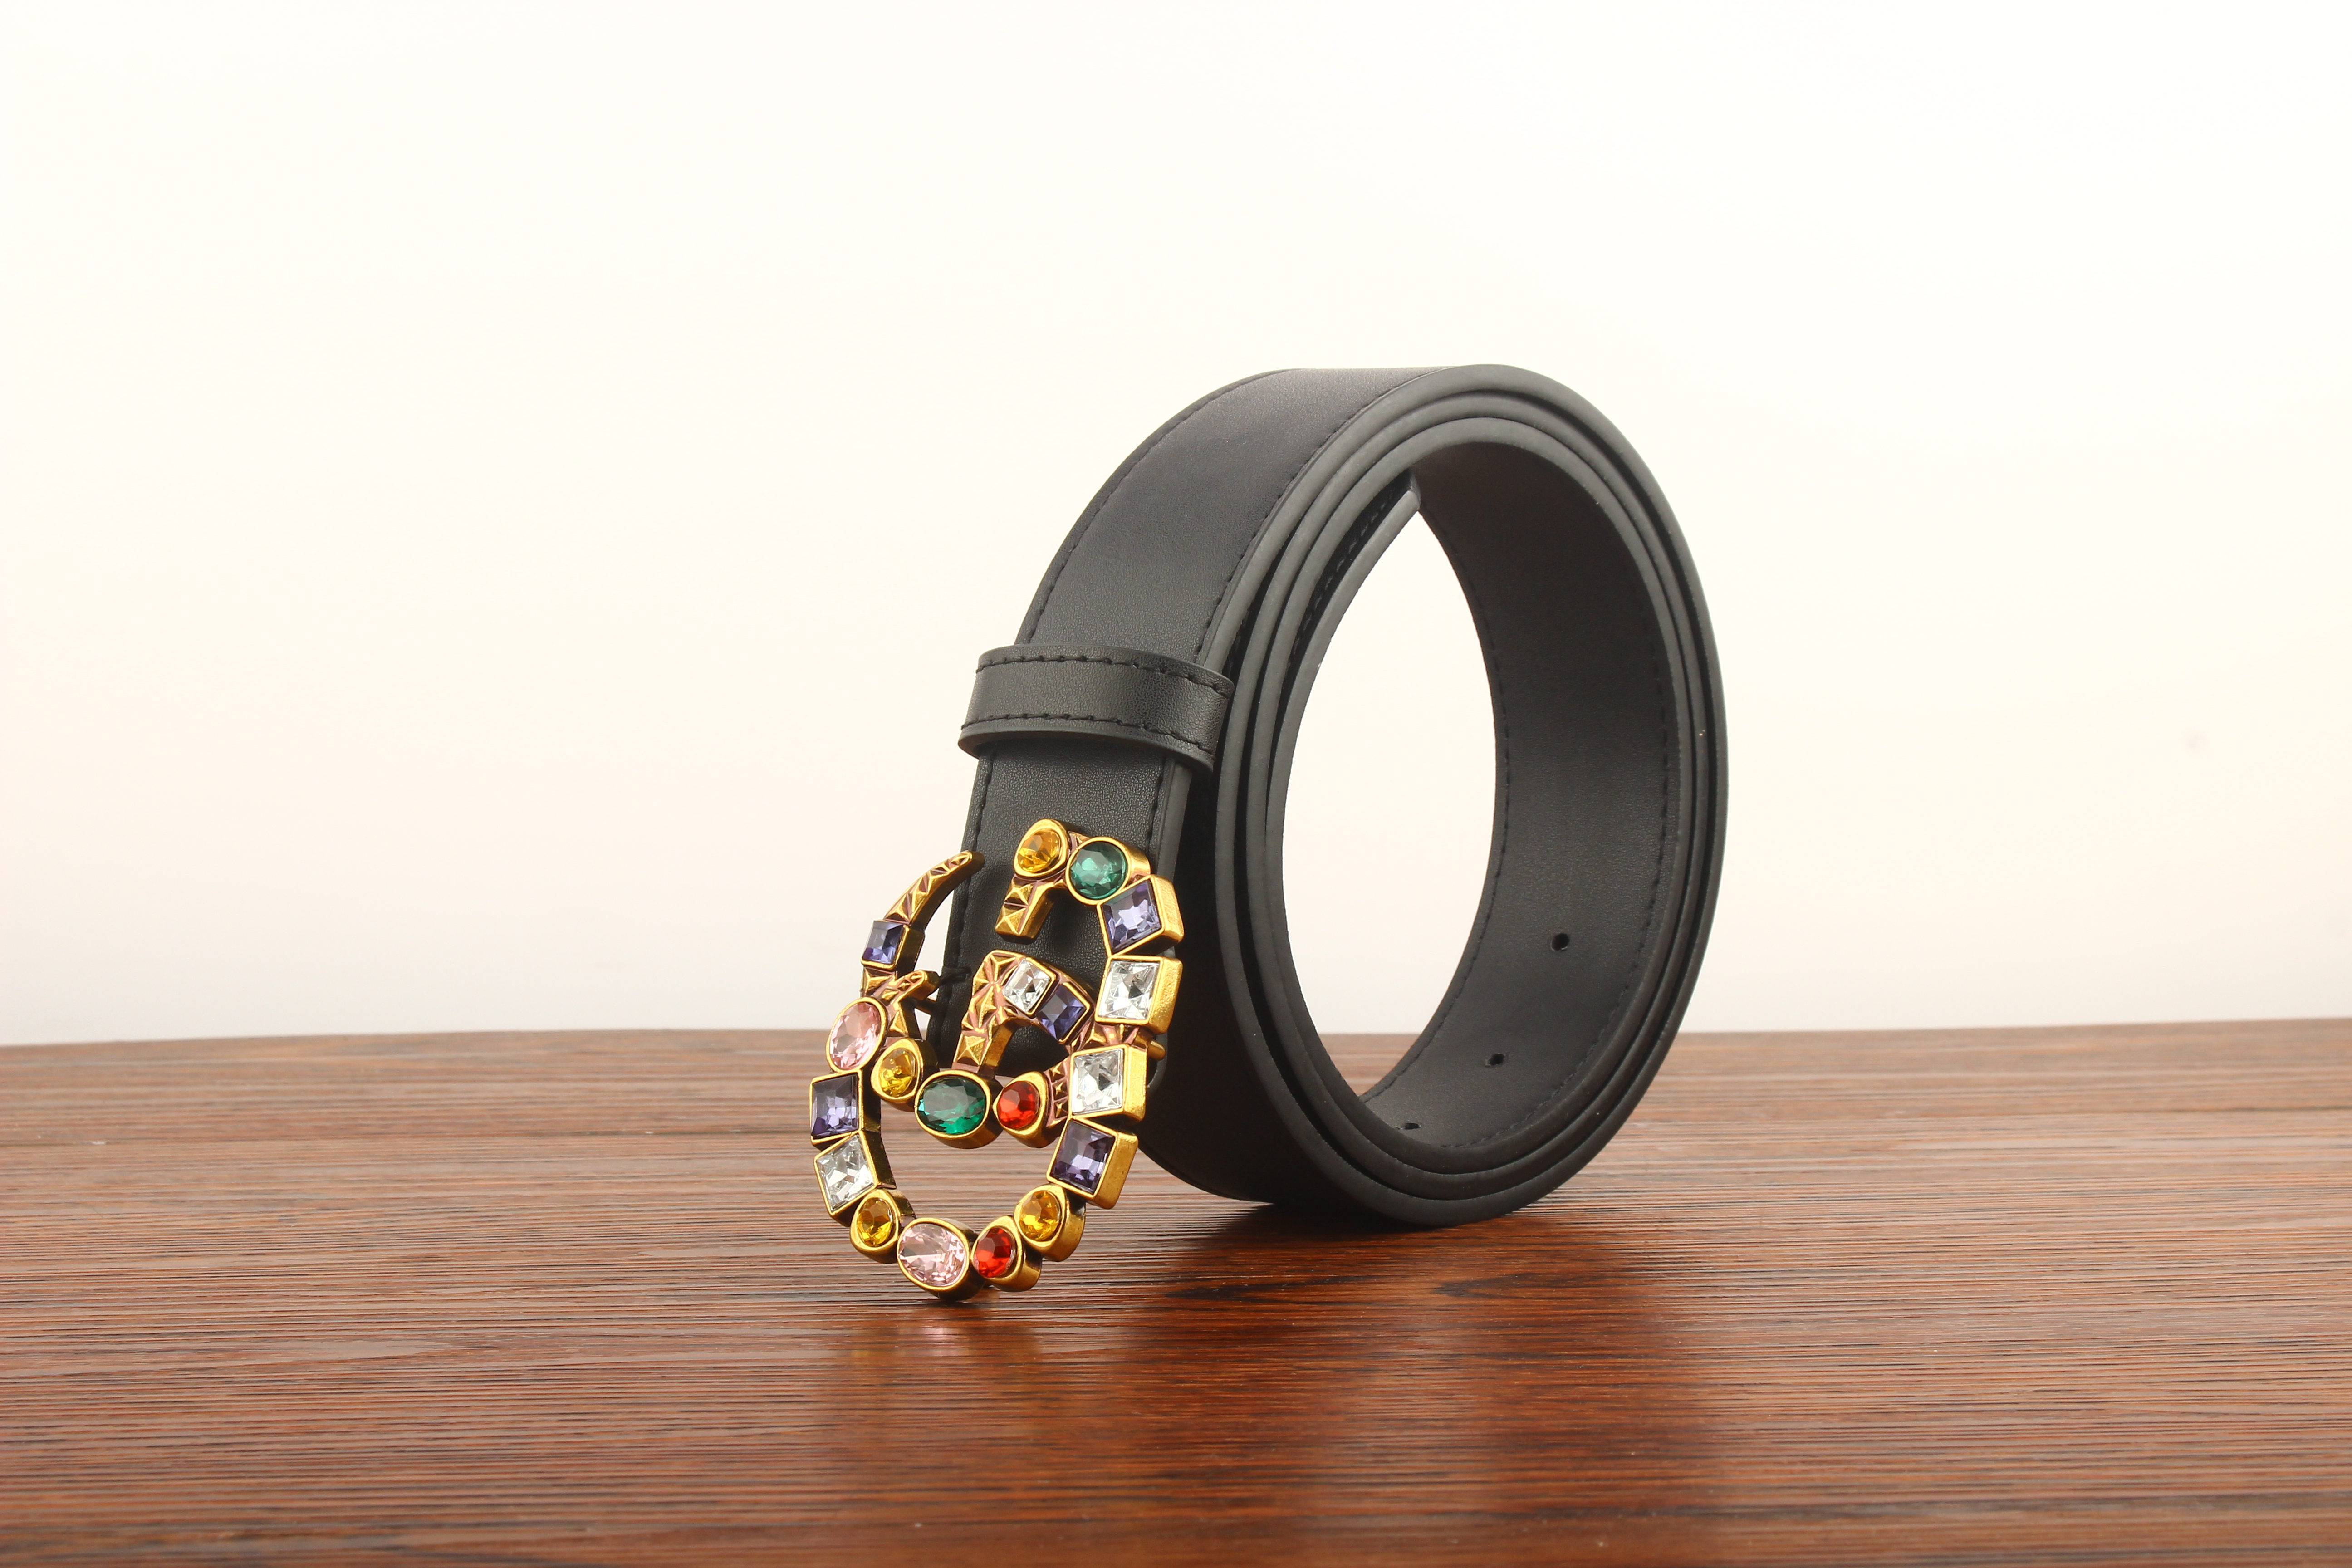 Leather GG belt with colorful crystal